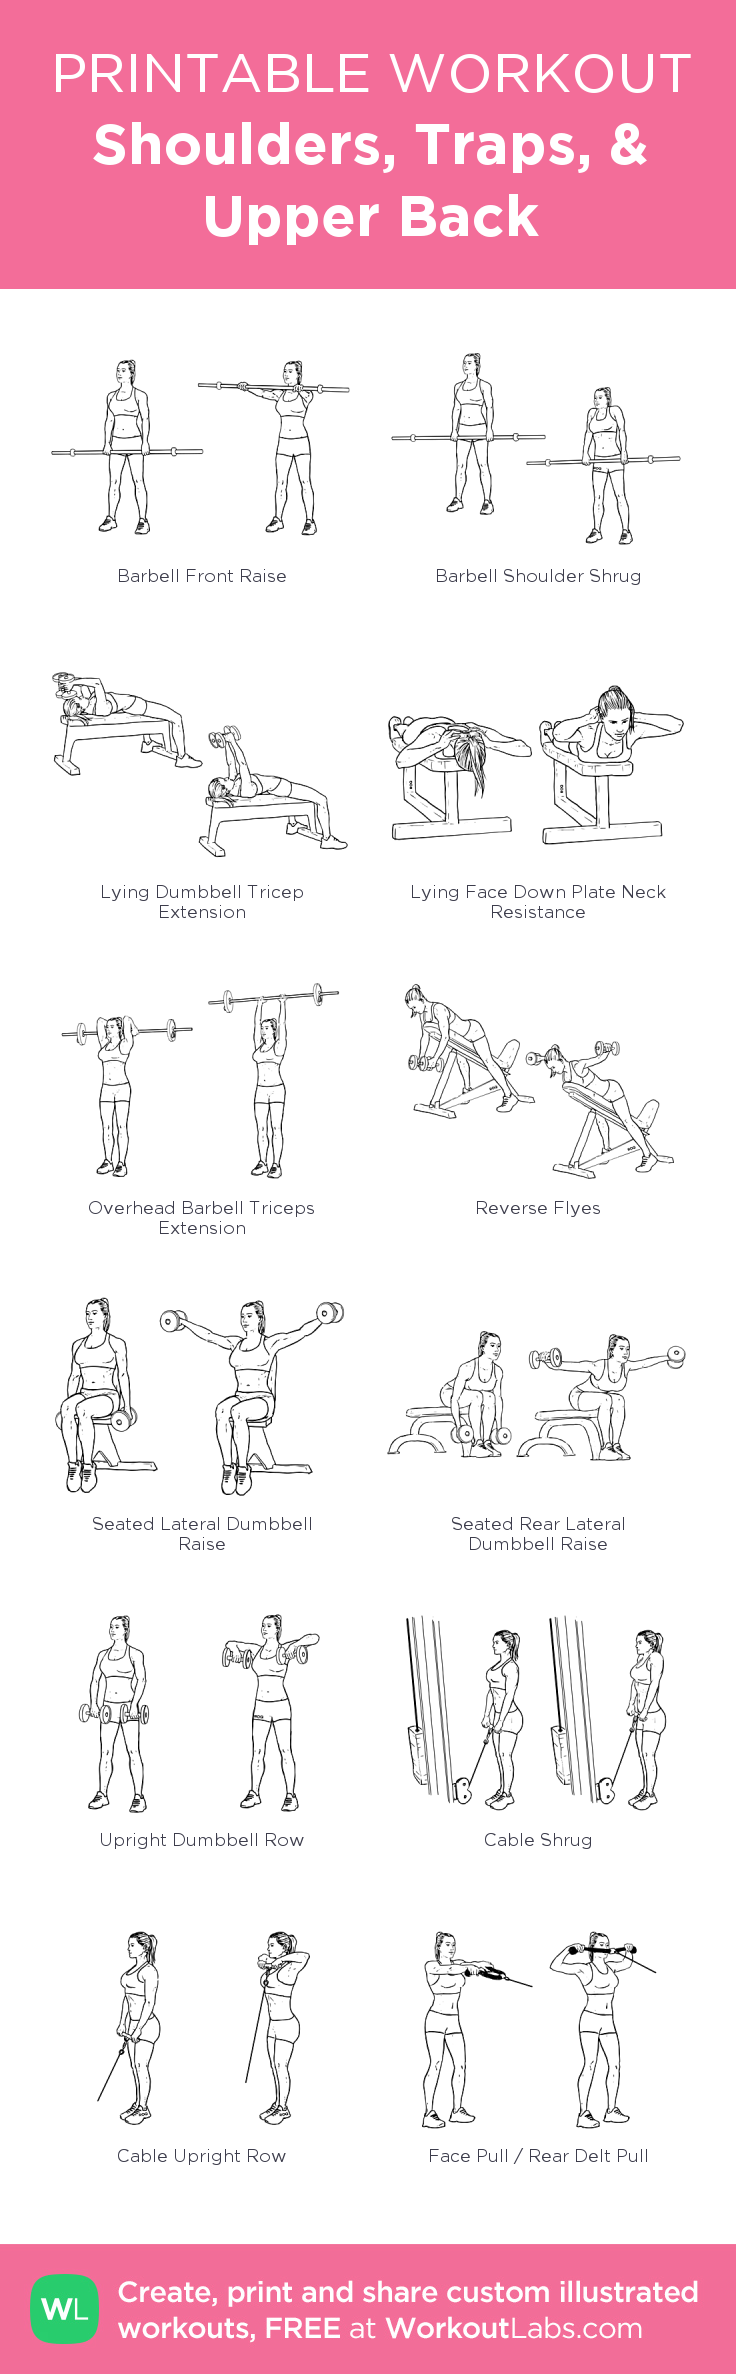 Shoulders, Traps, & Upper Back:my visual workout created at WorkoutLabs.com • Click through to customize and download as a FREE PDF! #customworkout #trapsworkout Shoulders, Traps, & Upper Back:my visual workout created at WorkoutLabs.com • Click through to customize and download as a FREE PDF! #customworkout #trapsworkout Shoulders, Traps, & Upper Back:my visual workout created at WorkoutLabs.com • Click through to customize and download as a FREE PDF! #customworkout #trapsworkout Sh #trapsworkout